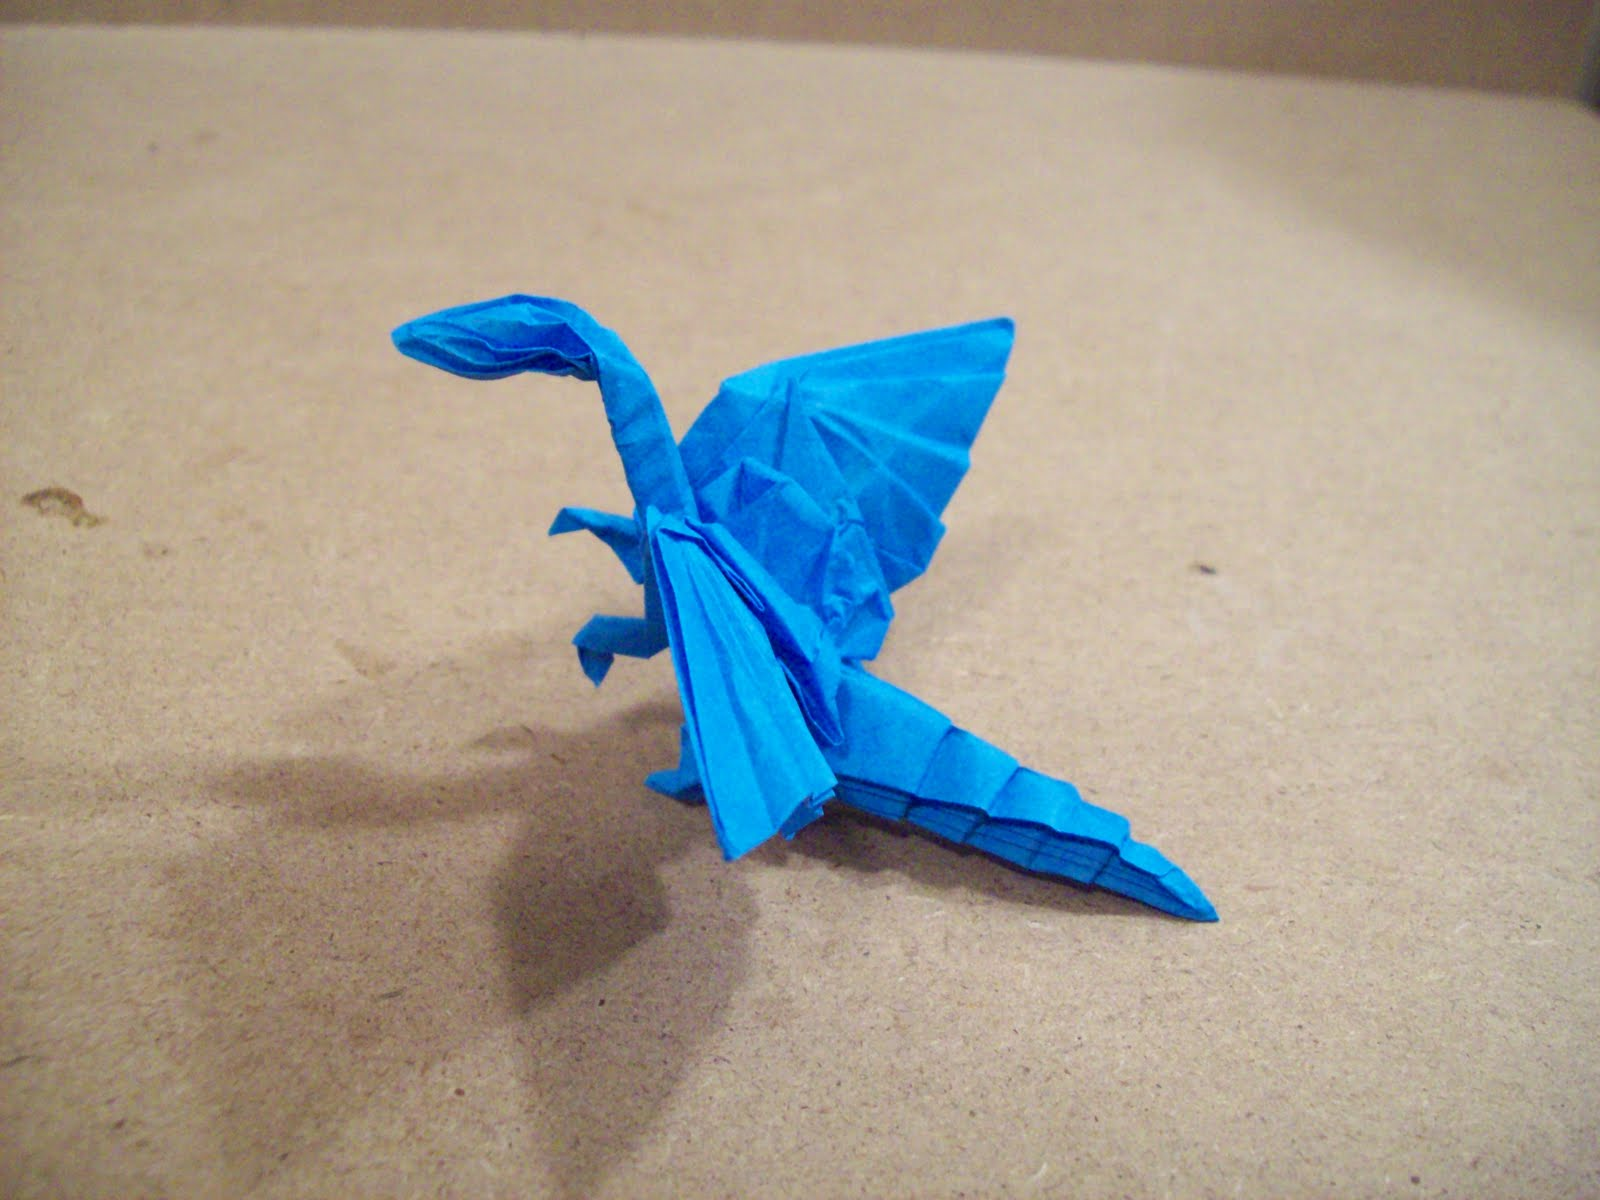 How To Make A Realistic Origami Dragon